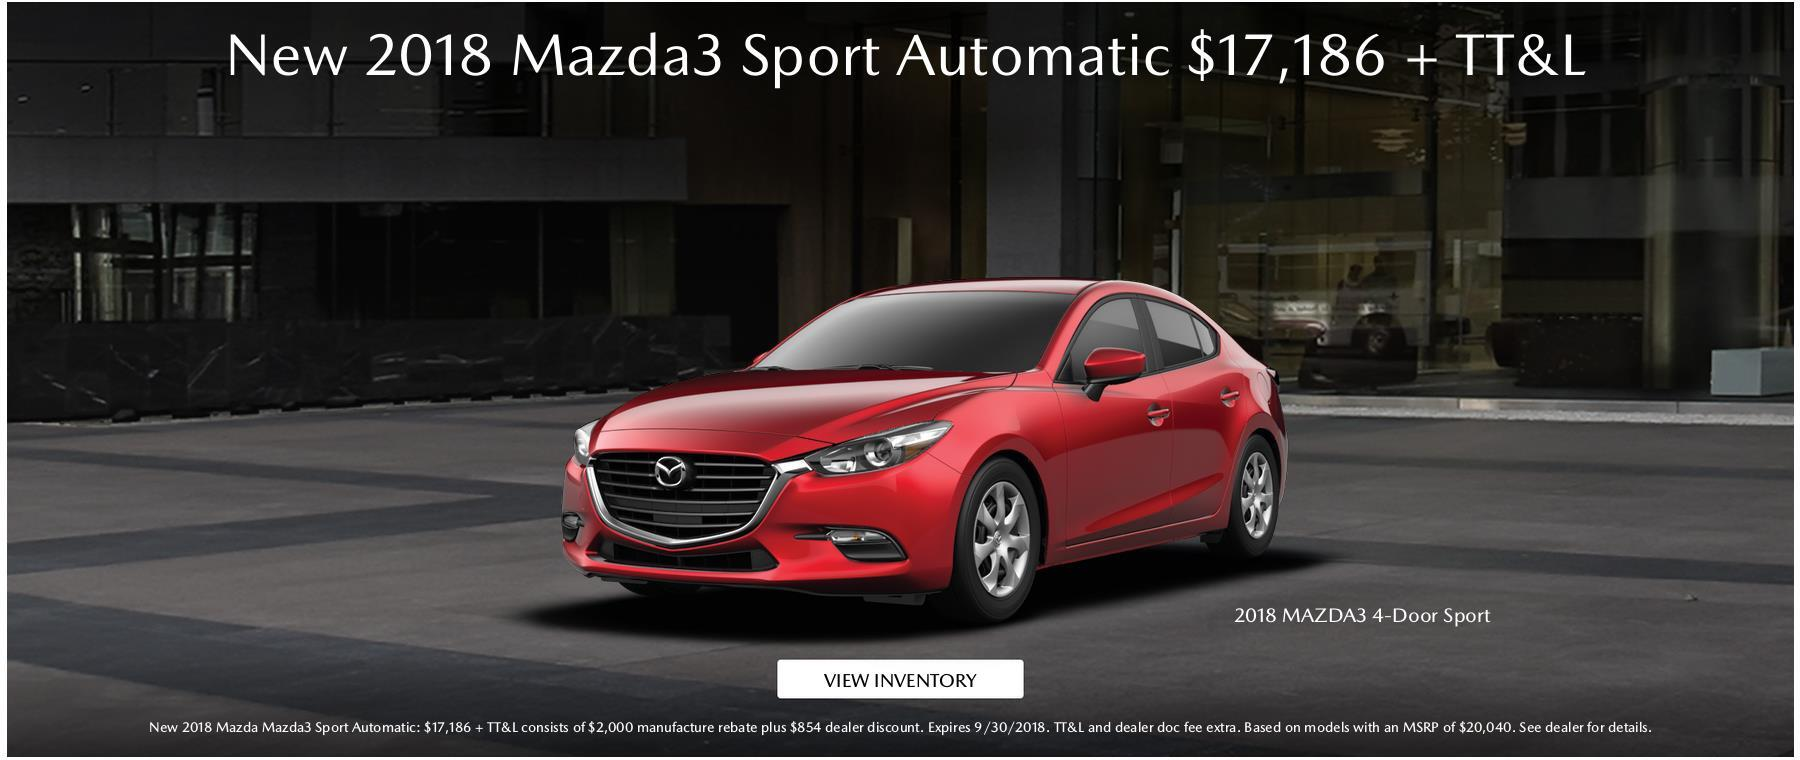 New 2018 Mazda3 Sport Automatic September Special